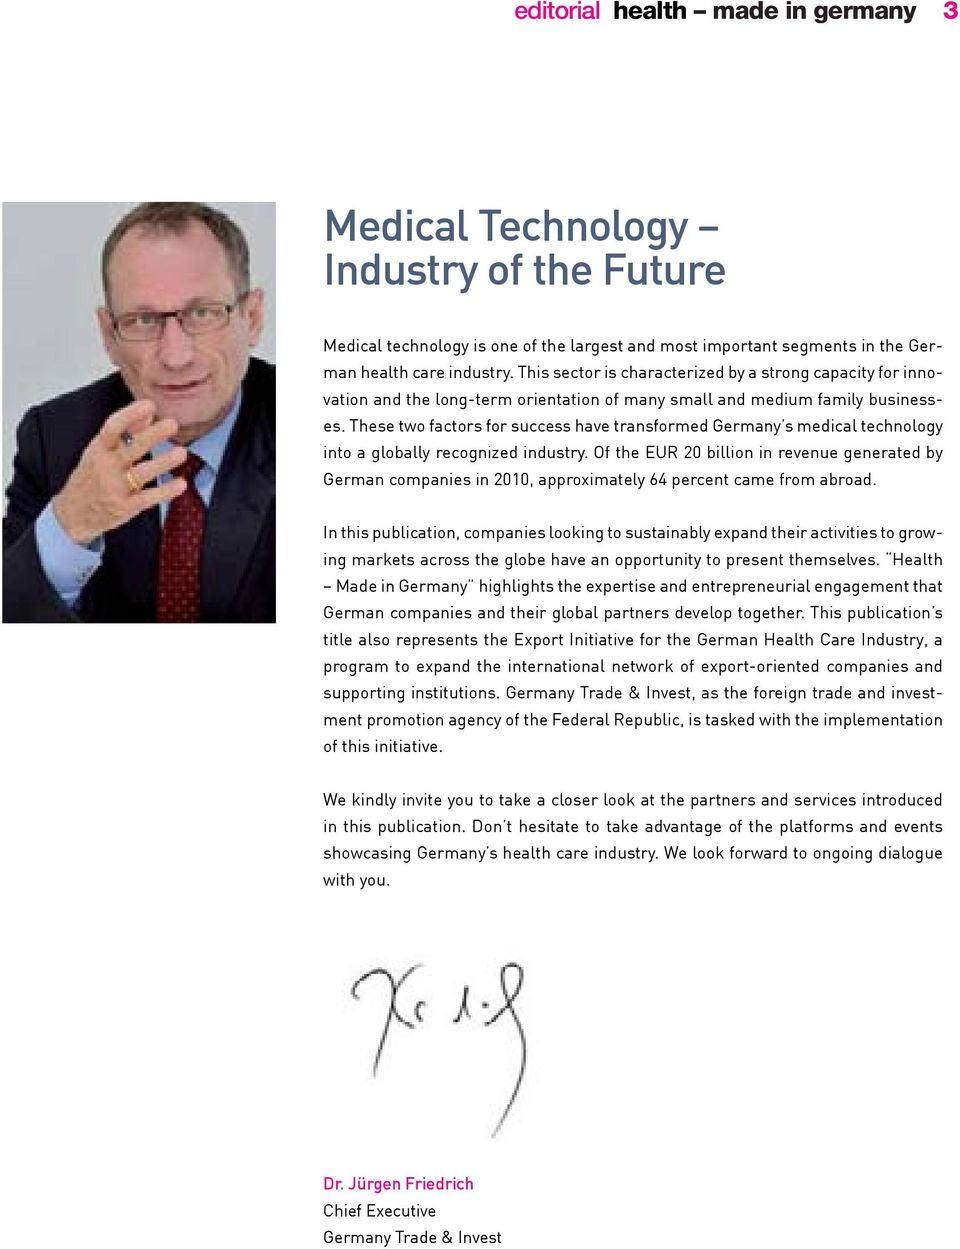 these two factors for success have transformed germany s medical technology into a globally recognized industry.